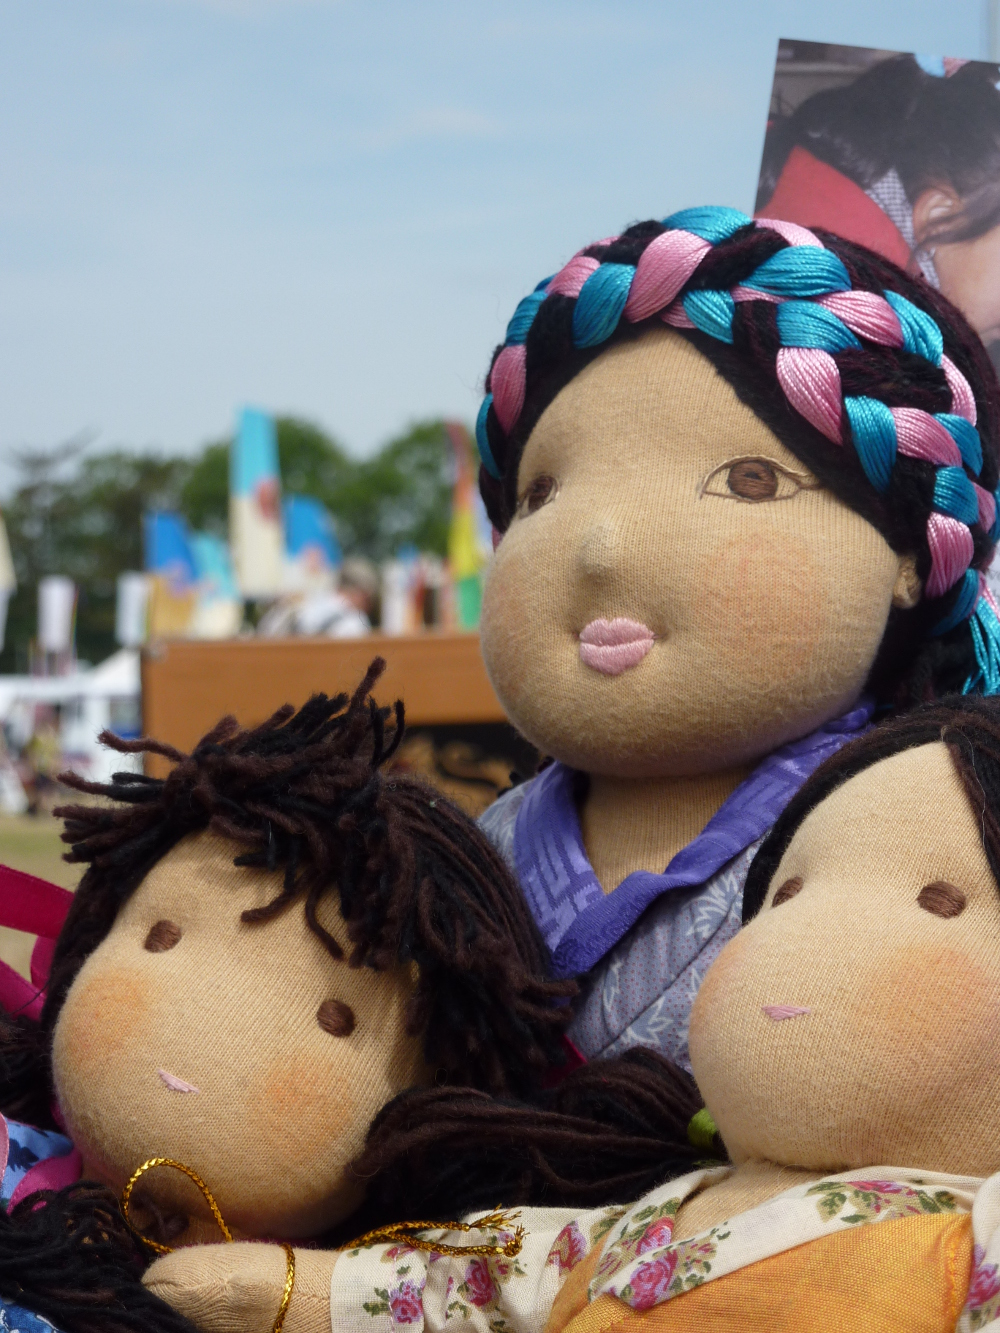 Dolls4Tibet, supported by the Tibet Relief Fund